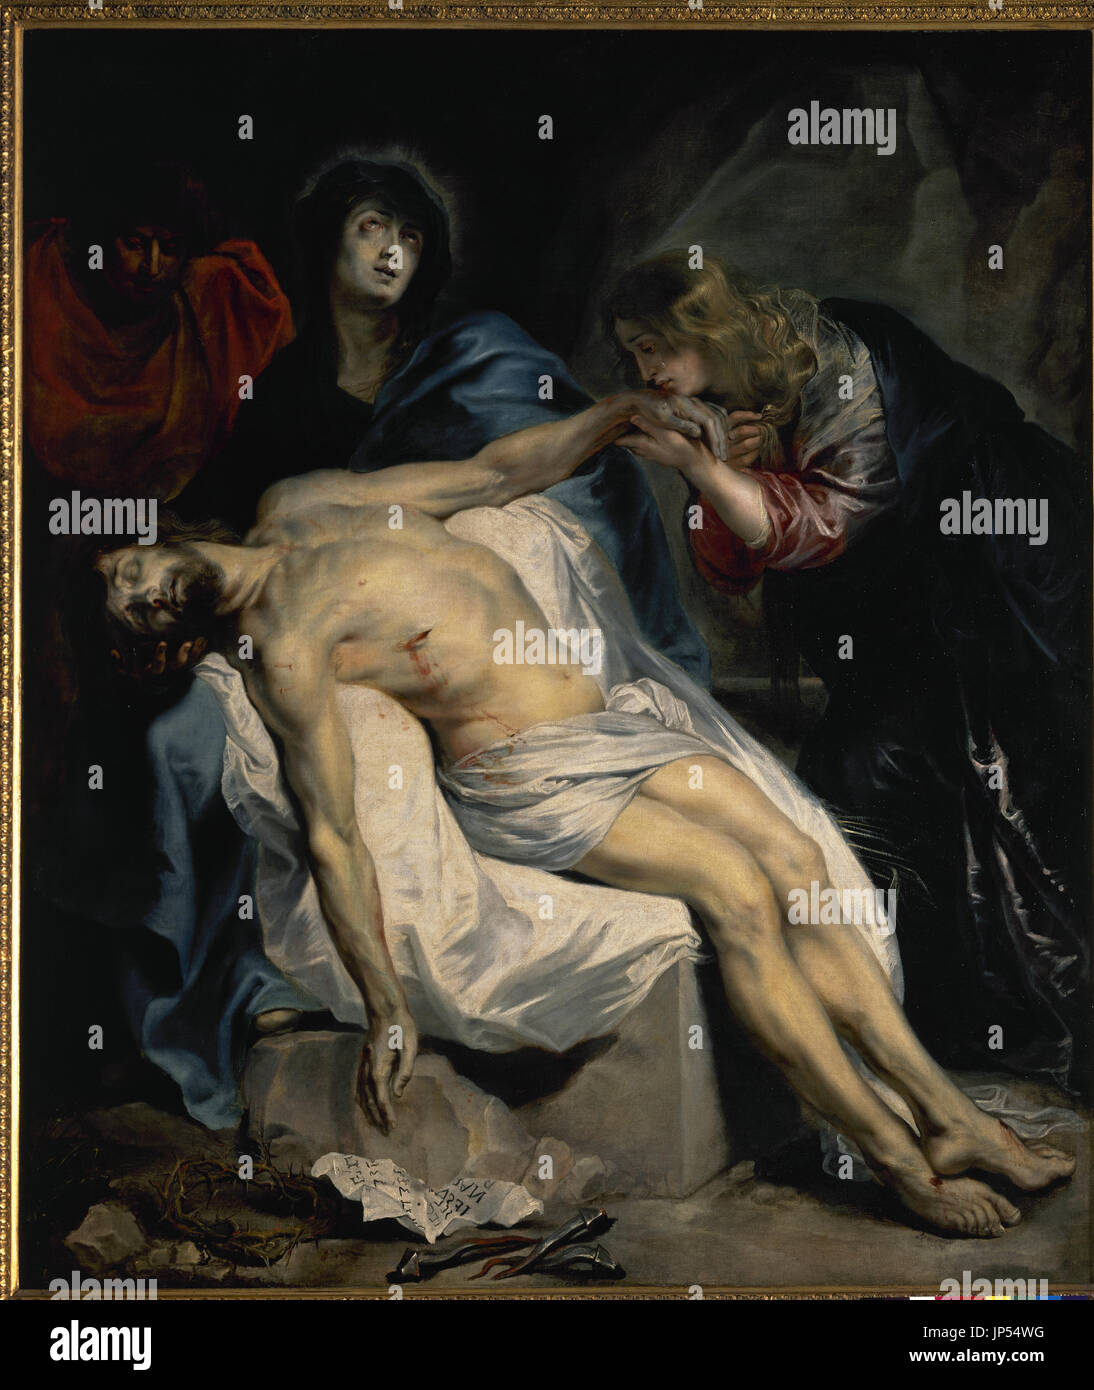 Anton van Dyckt (1599-1641). Flemish painter. The Pity, 1618-1620. Prado Museum. Madrid. Spain. - Stock Image